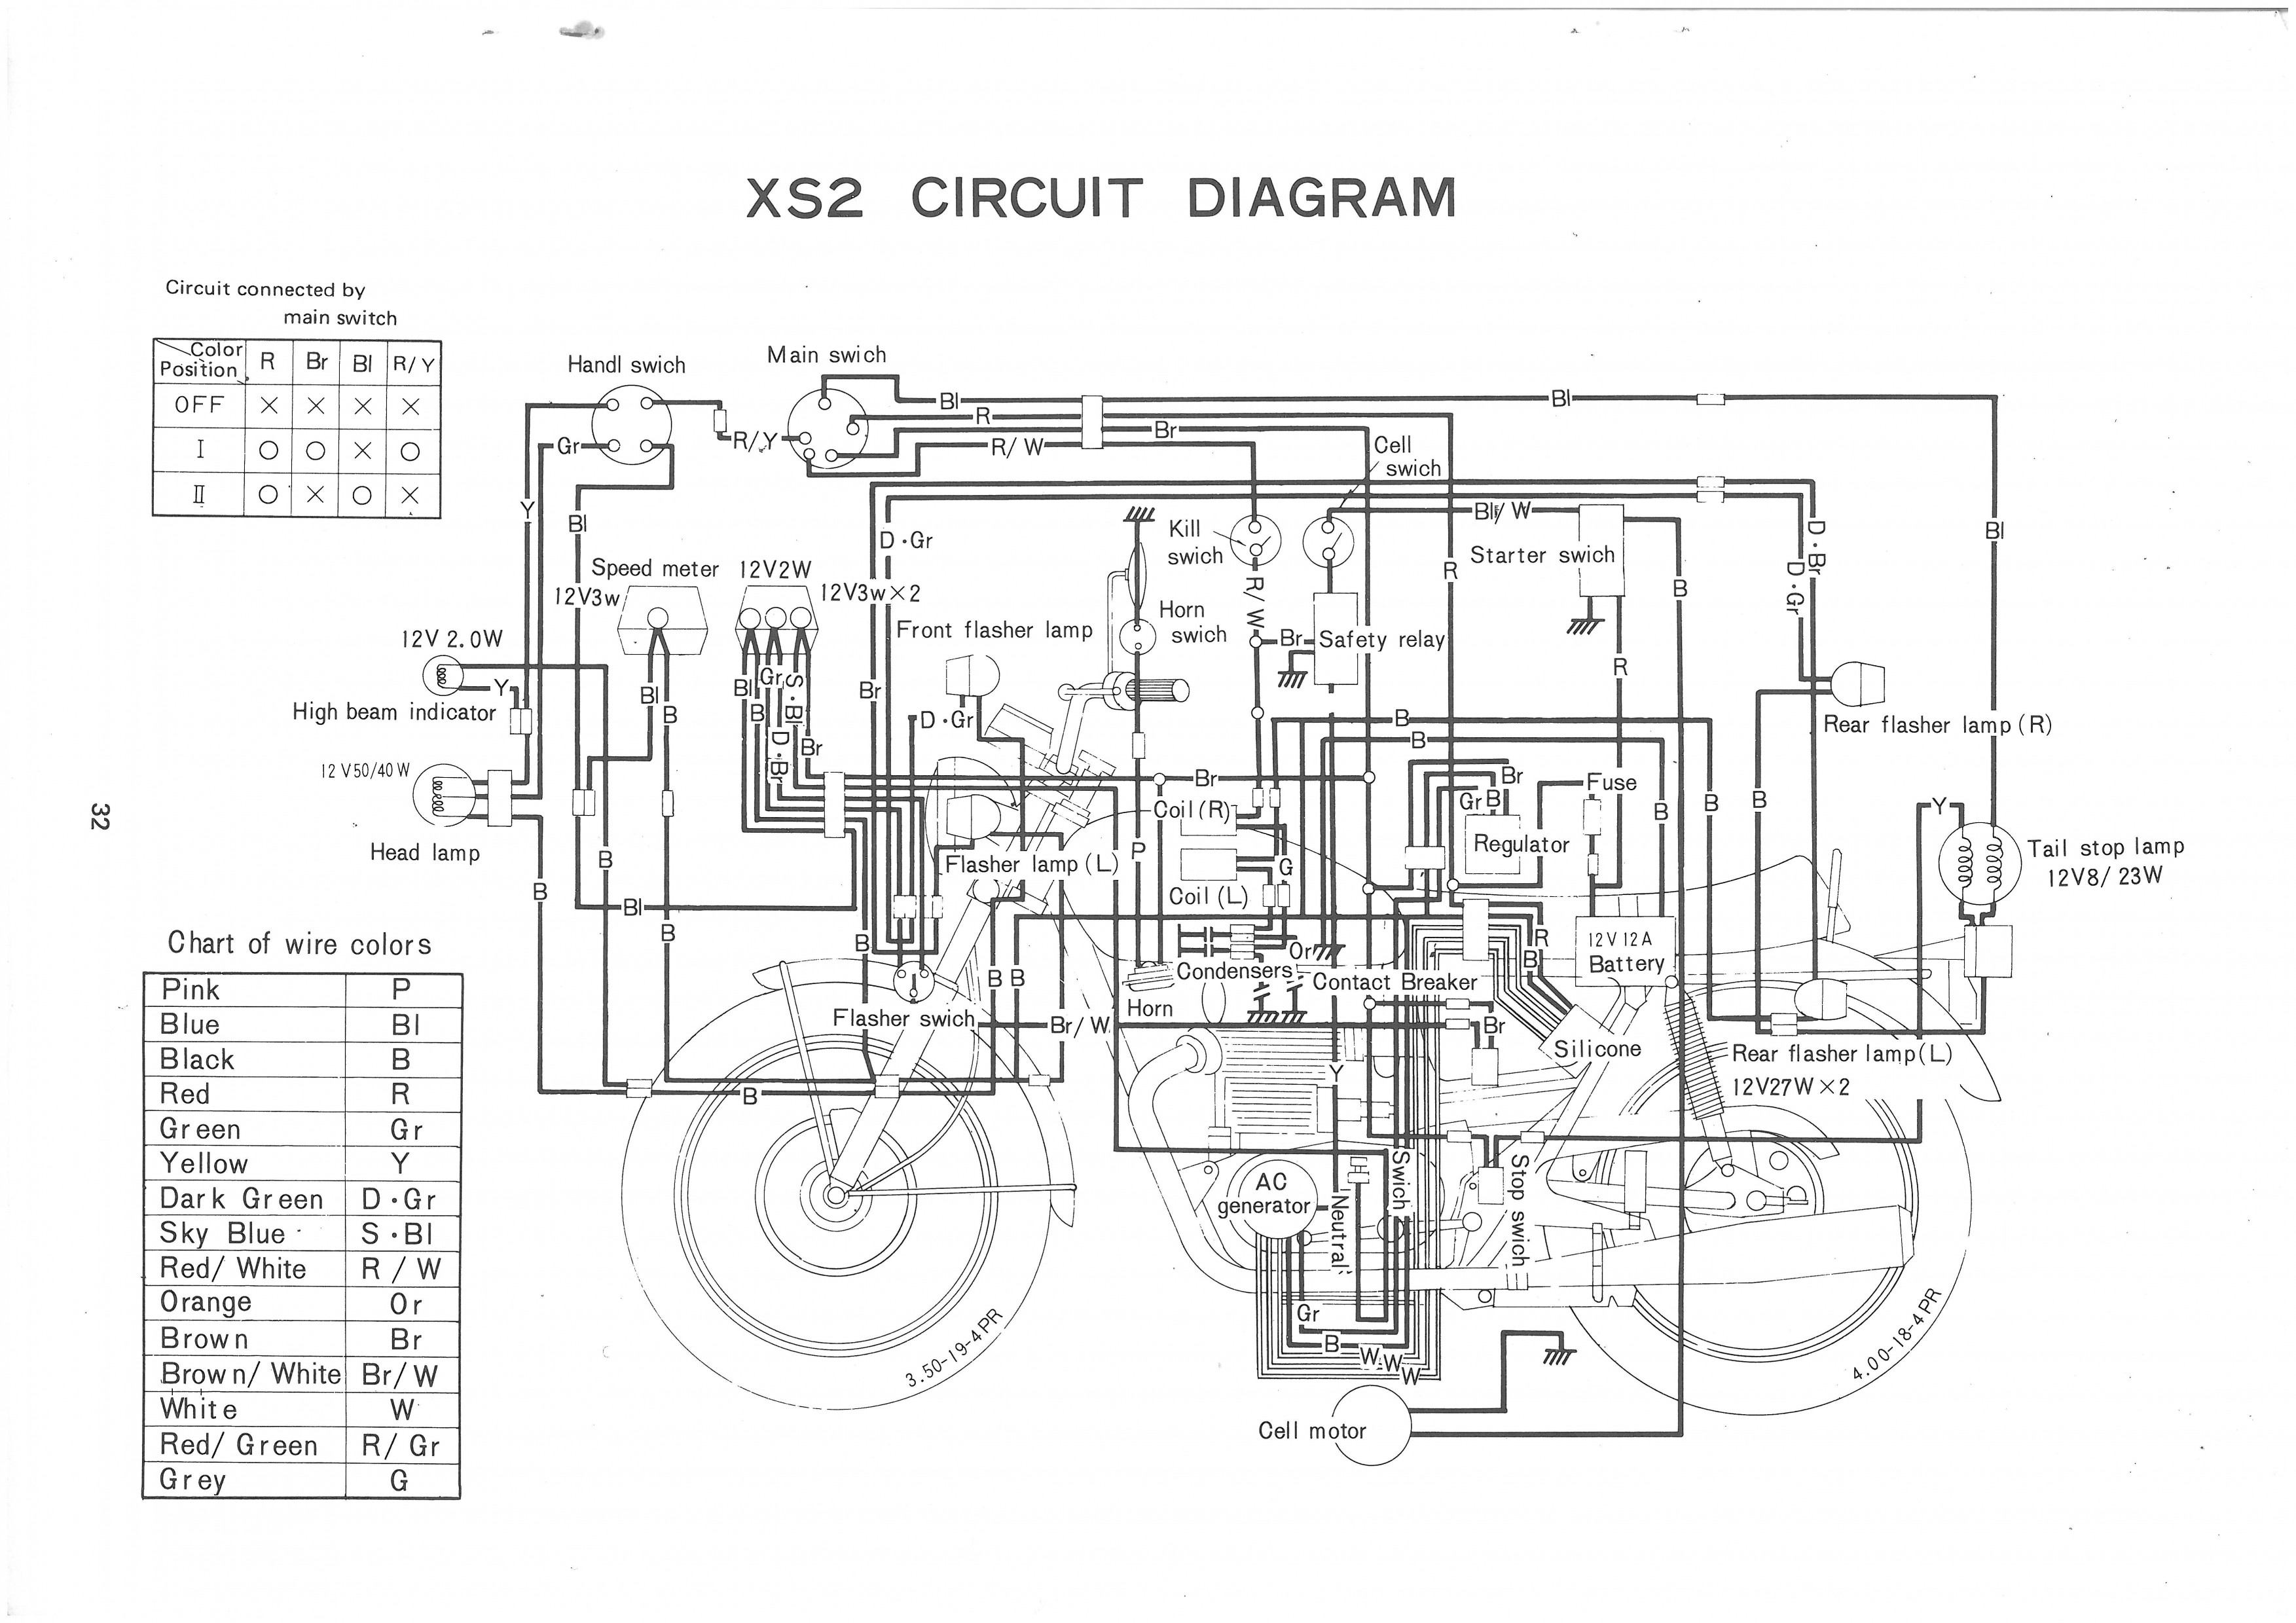 72 xs2 circuit diagram e1325607311619 xs650 72 xs2 73 tx650 circuit diagram thexscafe XS2 Bow String at gsmportal.co